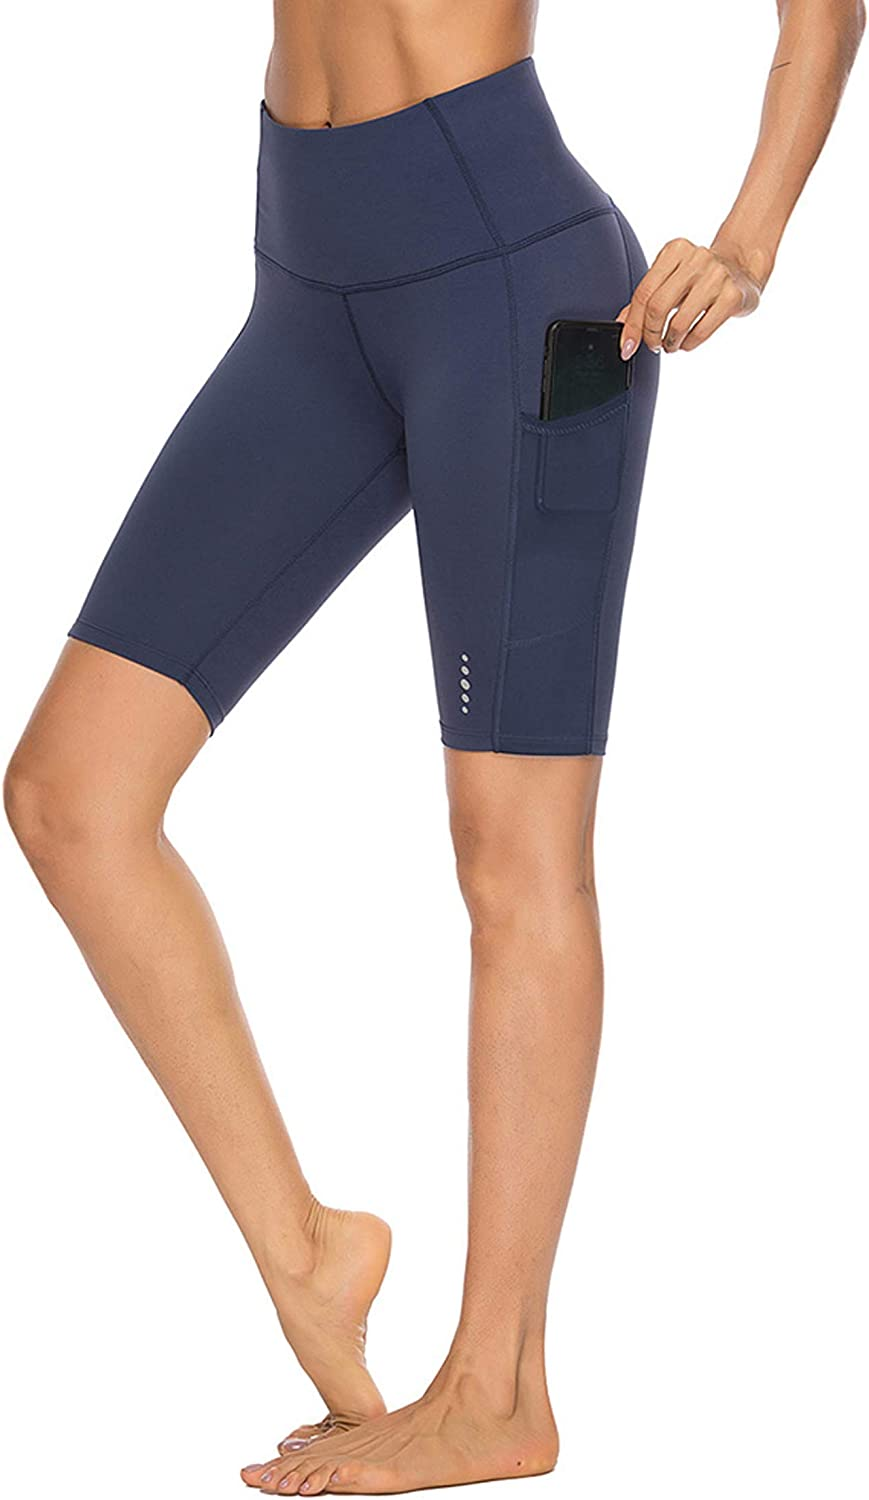 Popular shop is the lowest price challenge FeelinGirl Womens Black High Waist Pants with Leggings Chicago Mall Pock Yoga